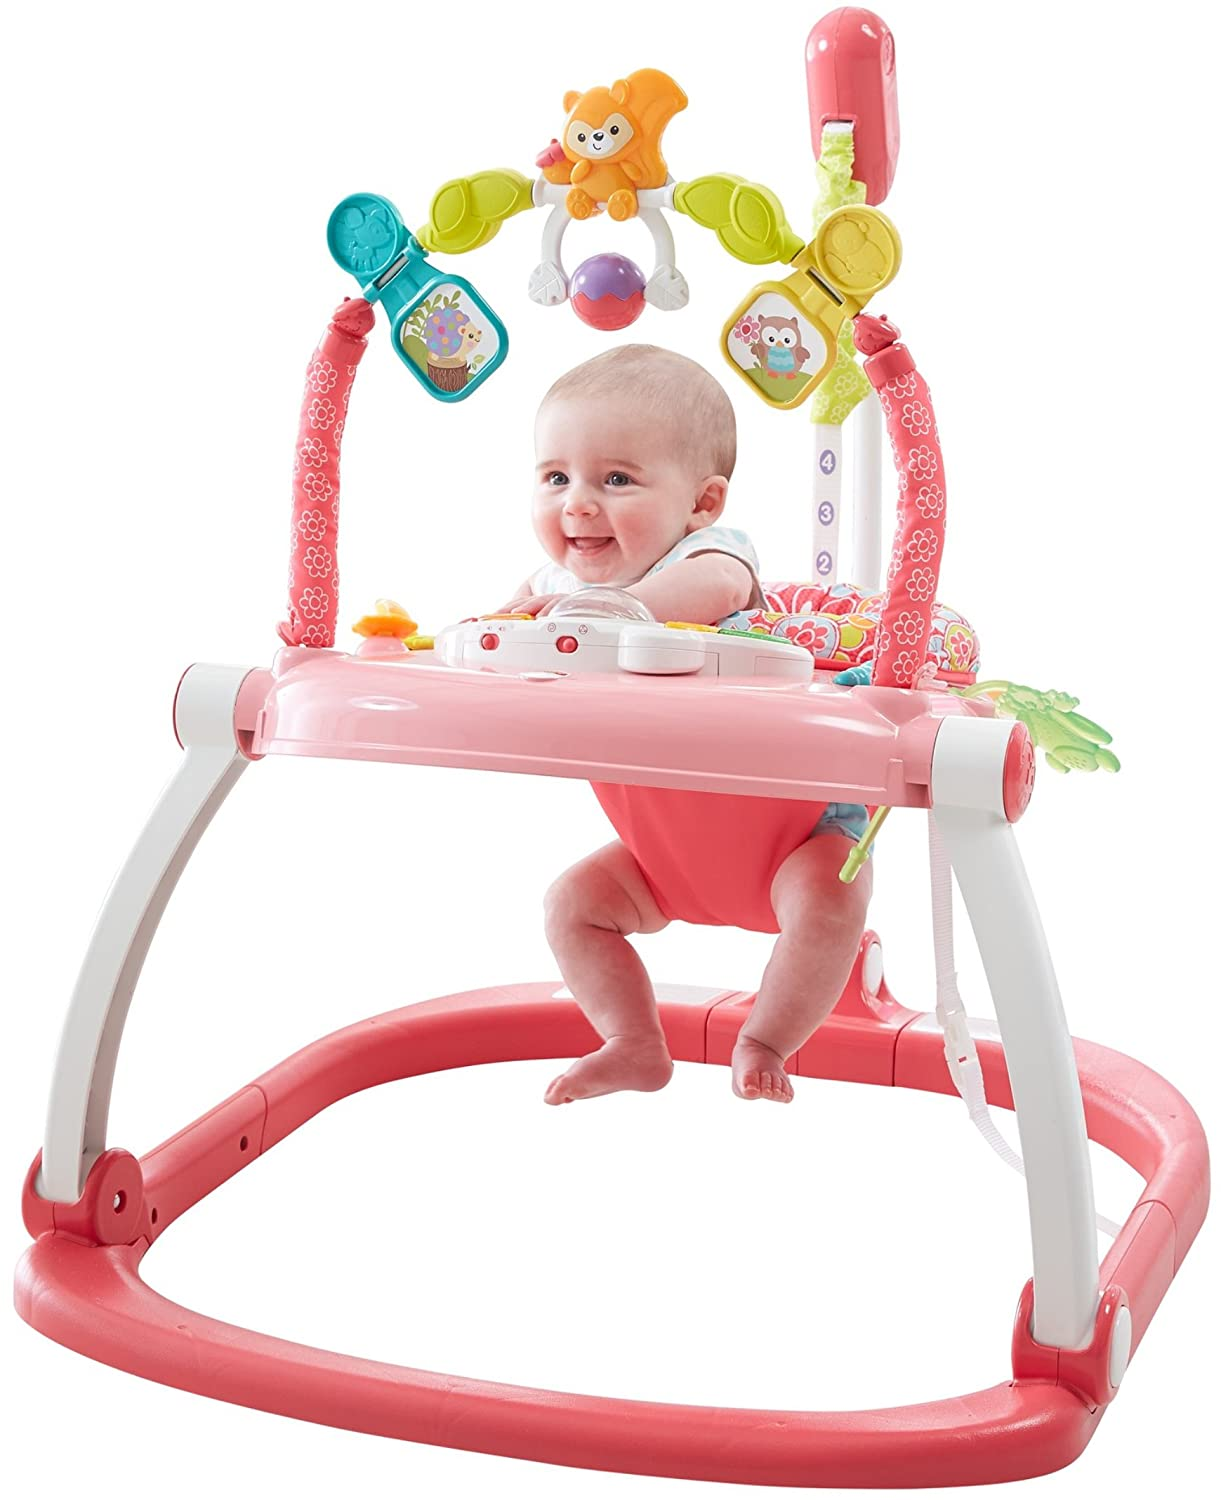 08bf4fe38 Amazon.com   Fisher-Price Floral Confetti SpaceSaver Jumperoo   Baby